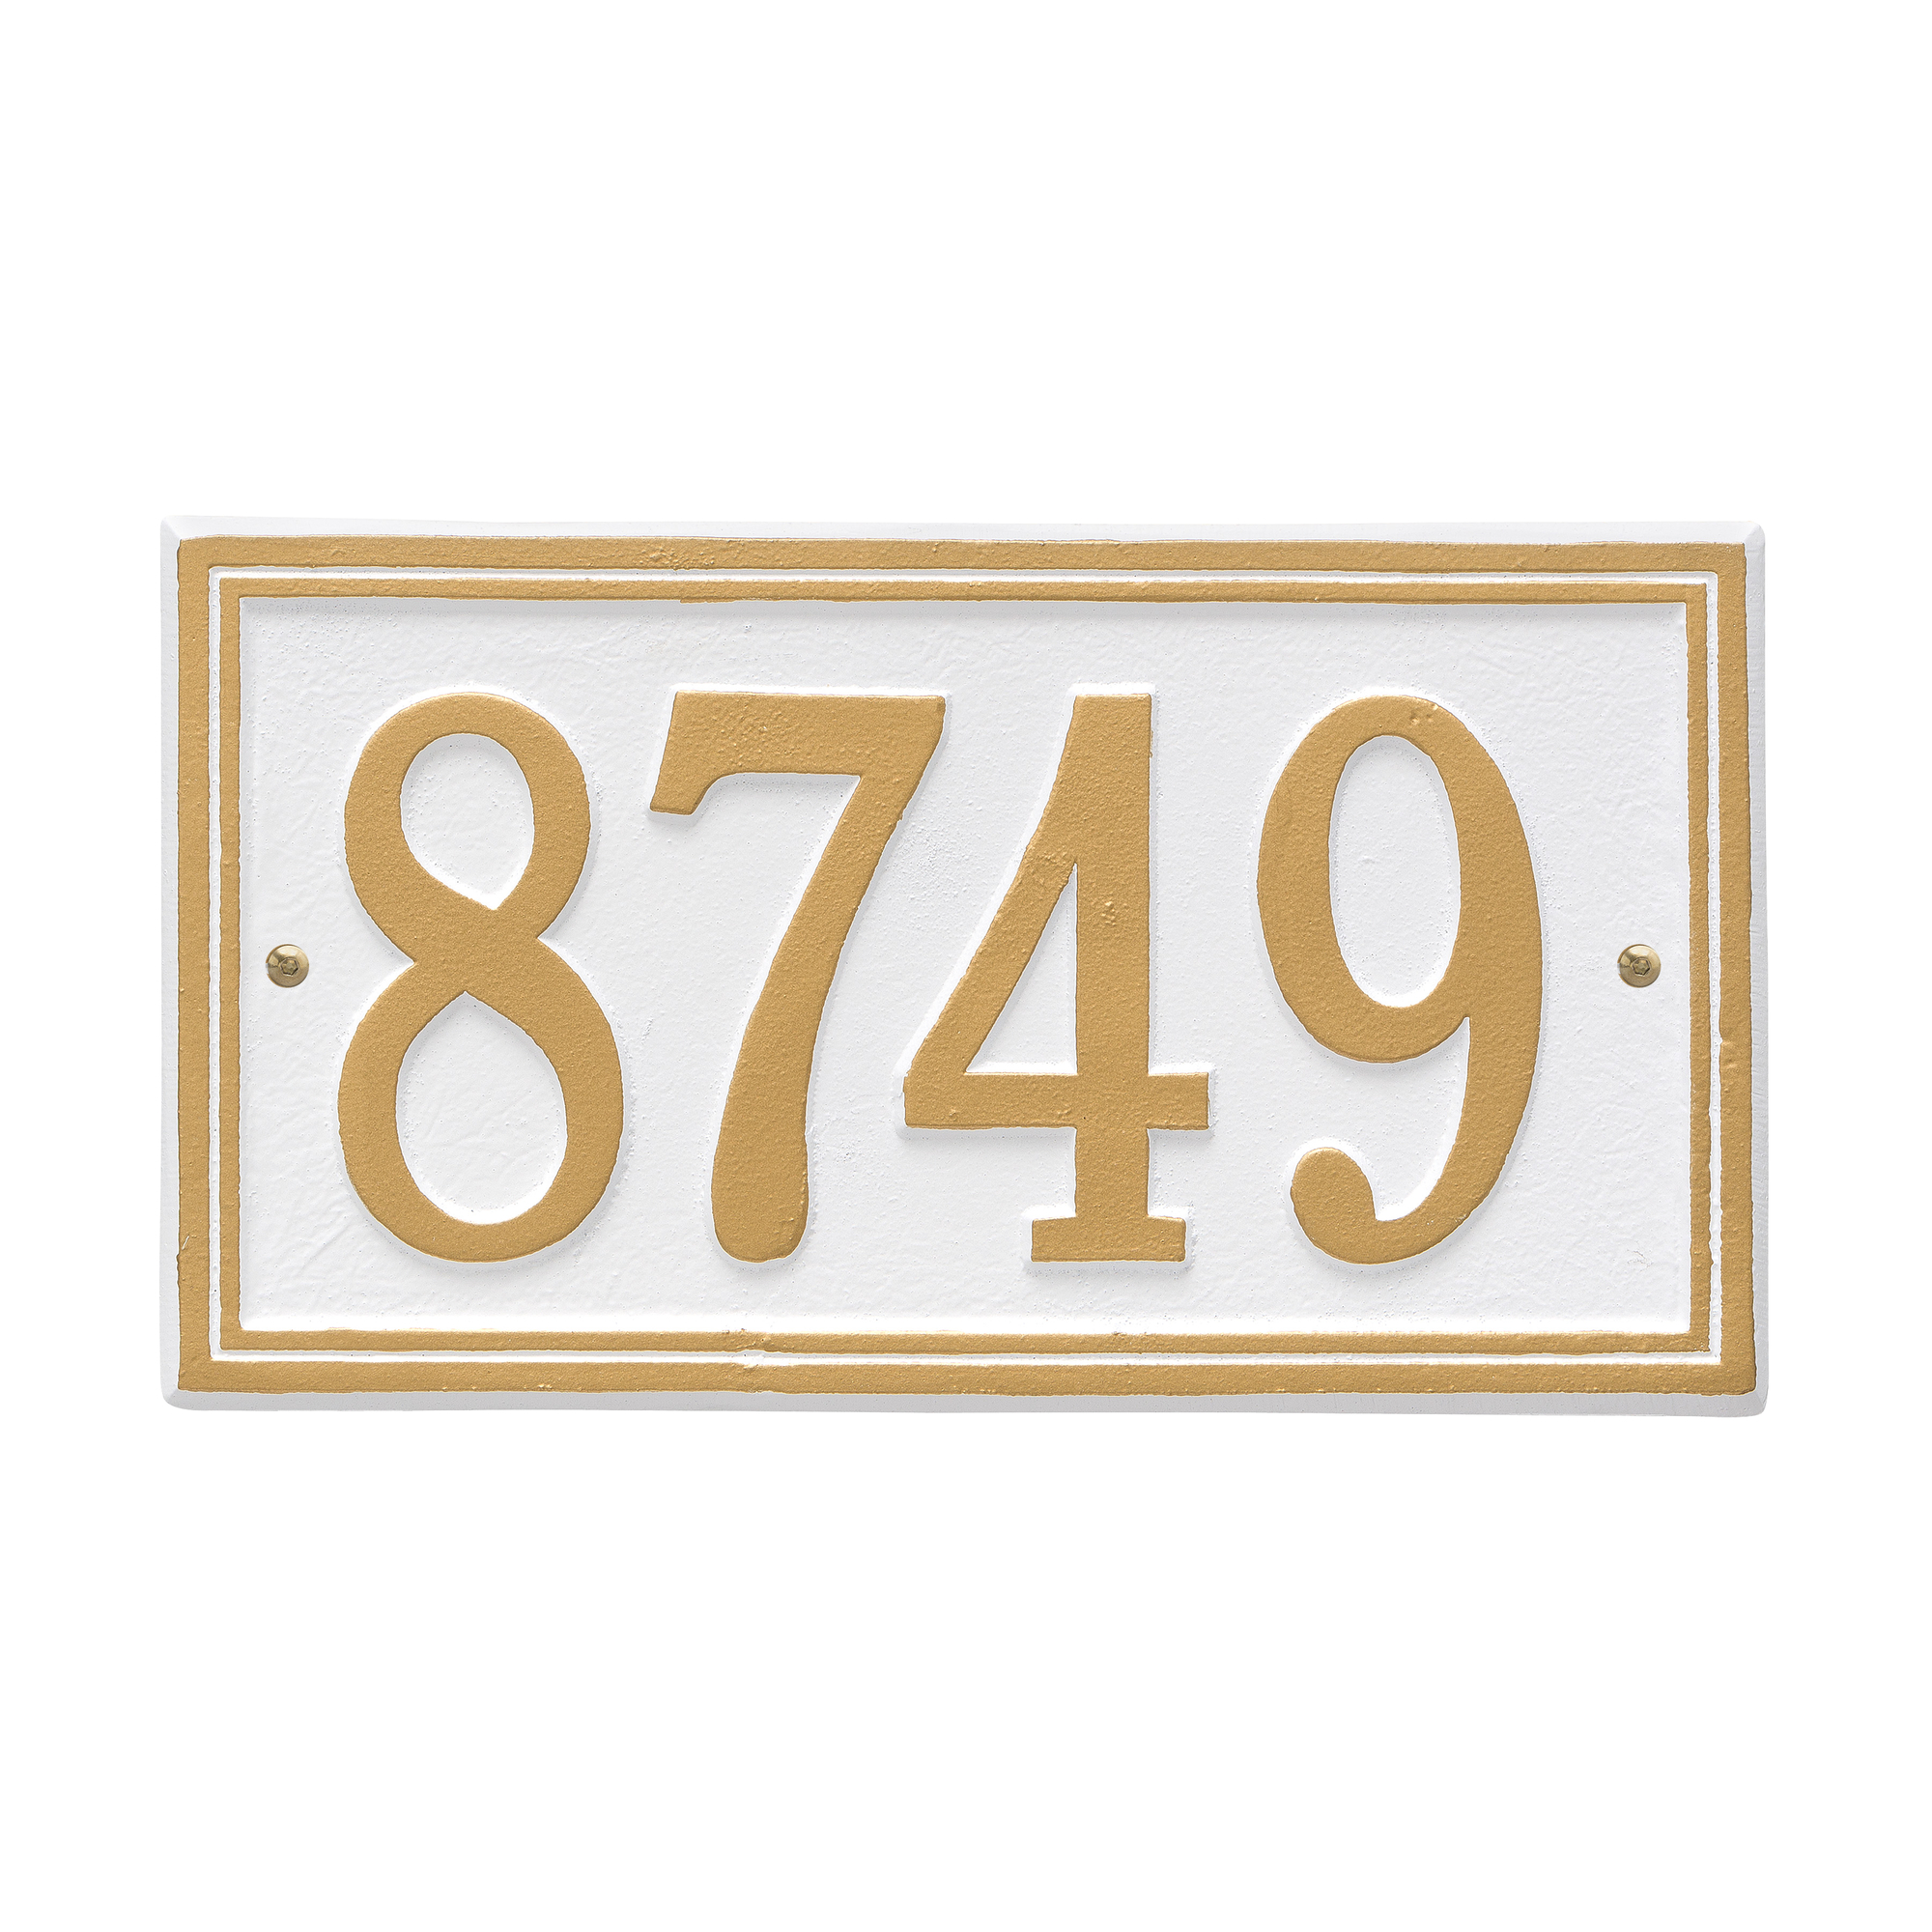 Personalized Whitehall Products Double Border1-Line House Numbers Plaque in White/Gold